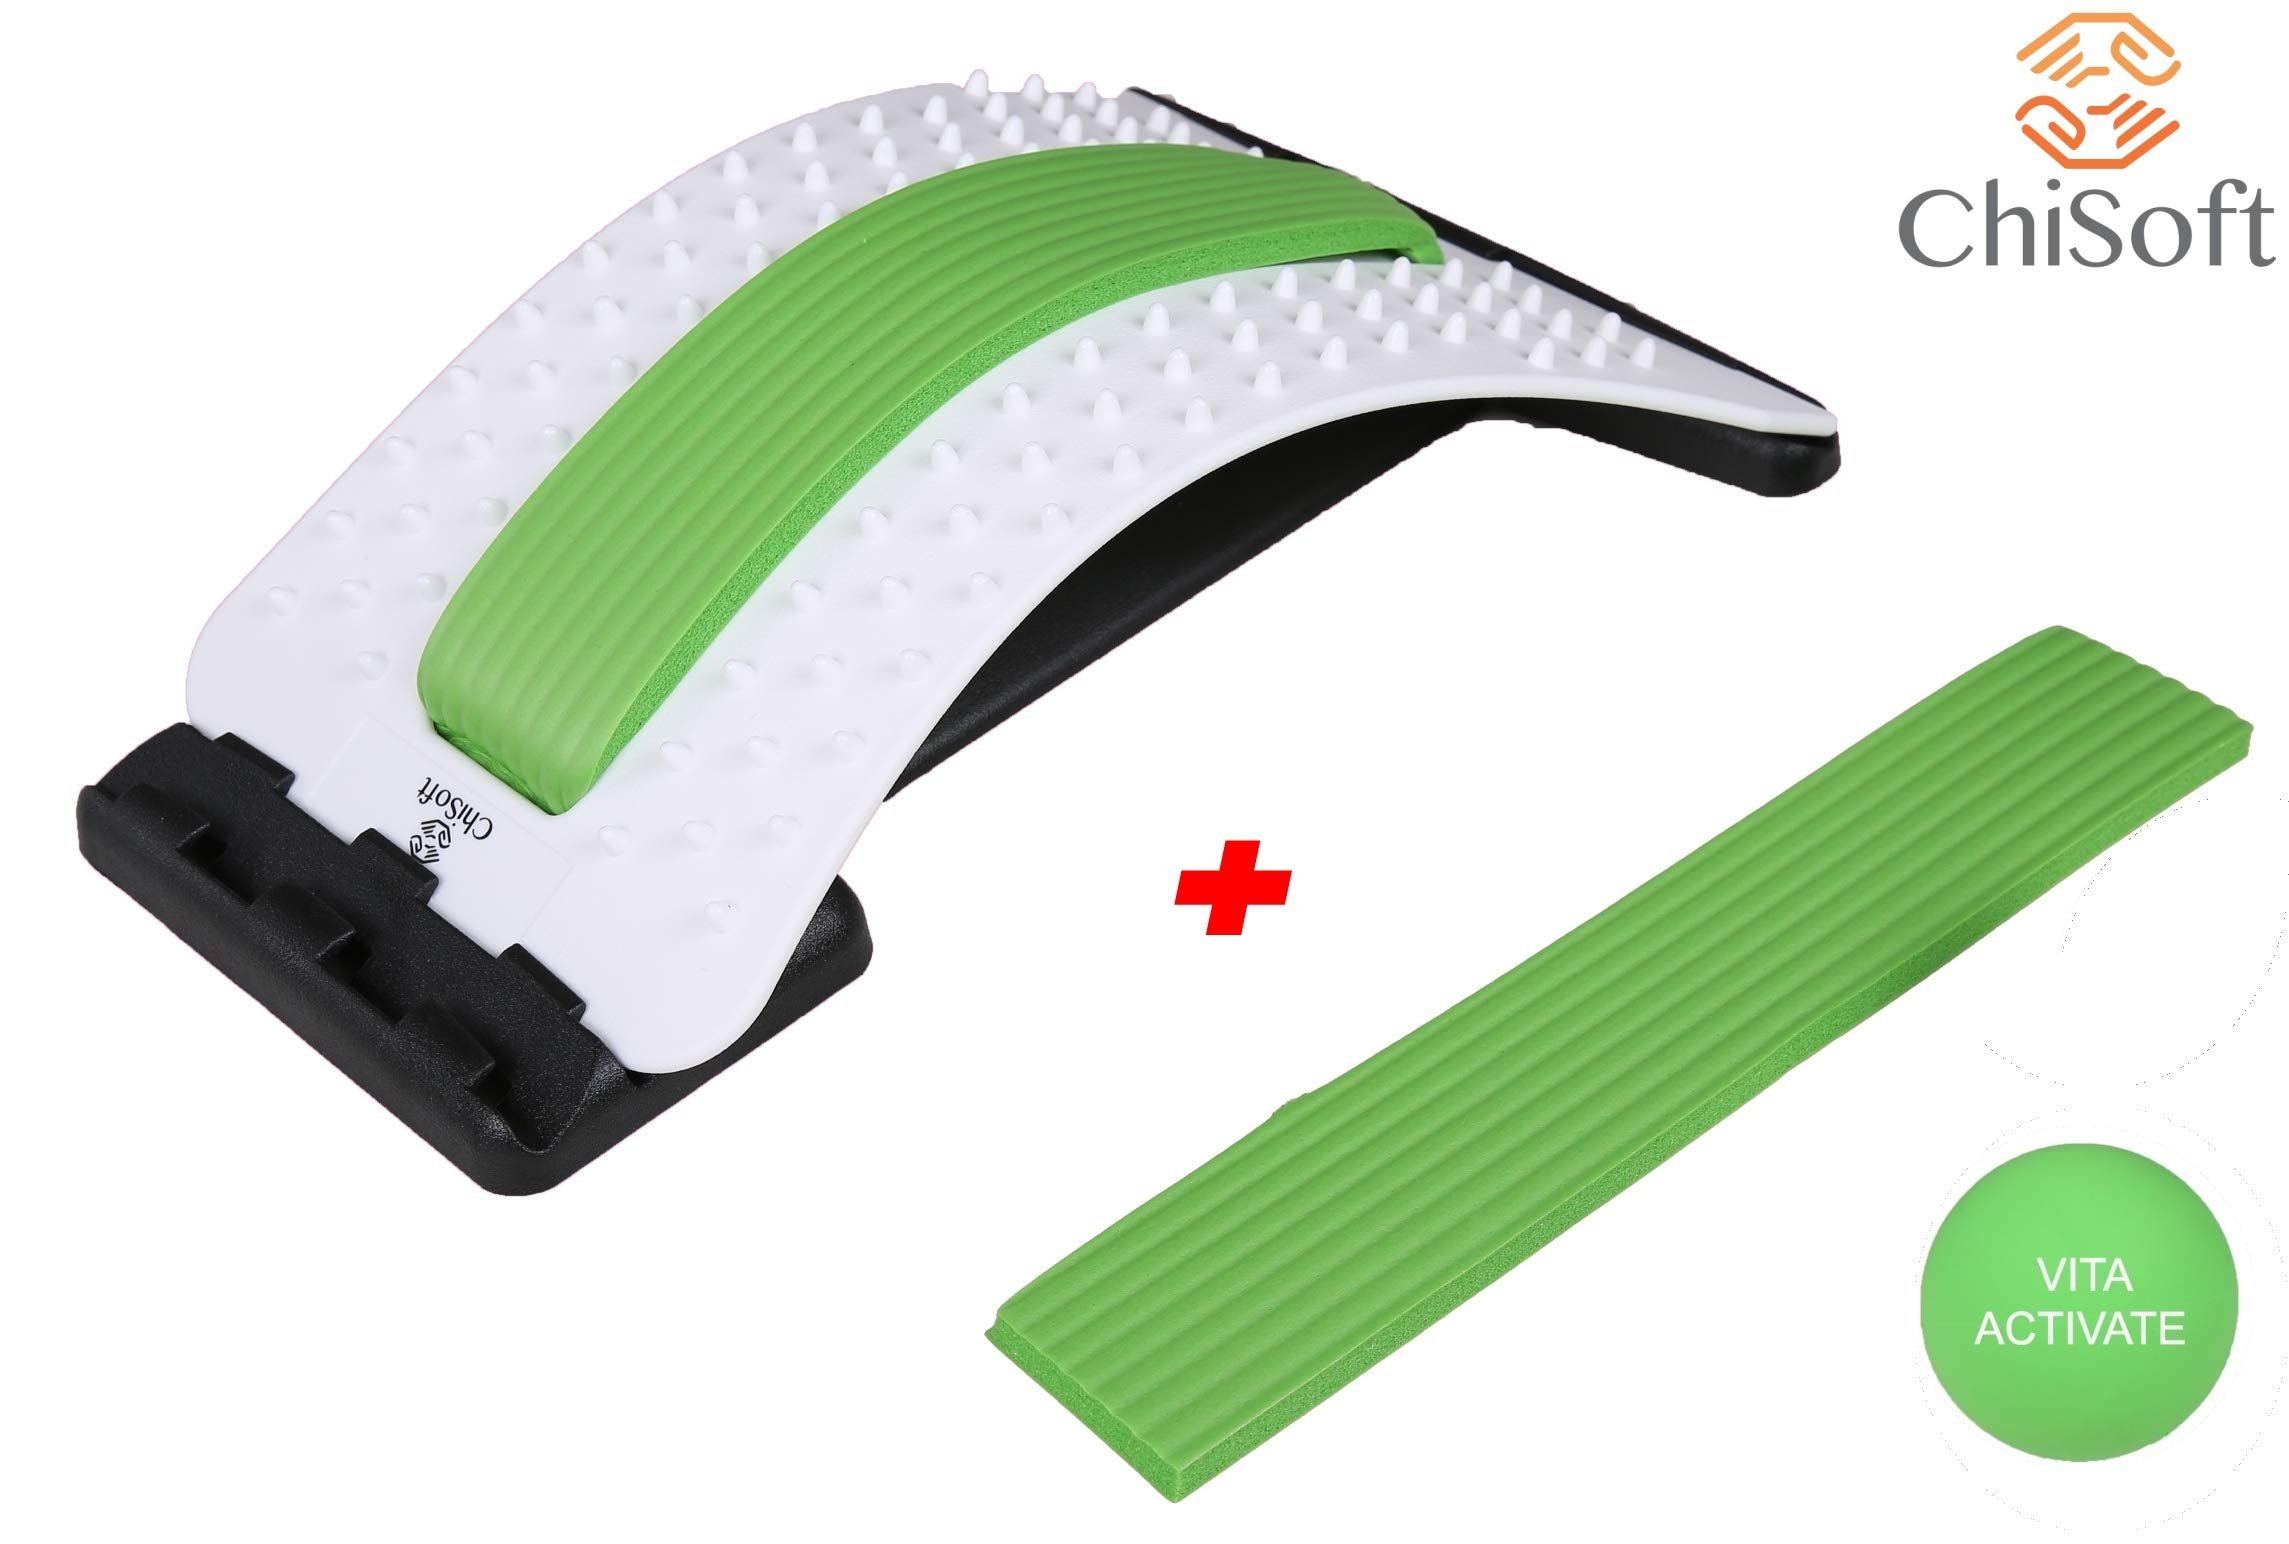 Best Arched Back Stretcher As Seen Doctors TV - CHISOFT (2nd Edition) Lumbar Stretching Device + Extra Cushion Foam + Trigger Point Massage Ball, Improve Posture, Sciatica Back Pain Relief by CHISOFT (Image #1)